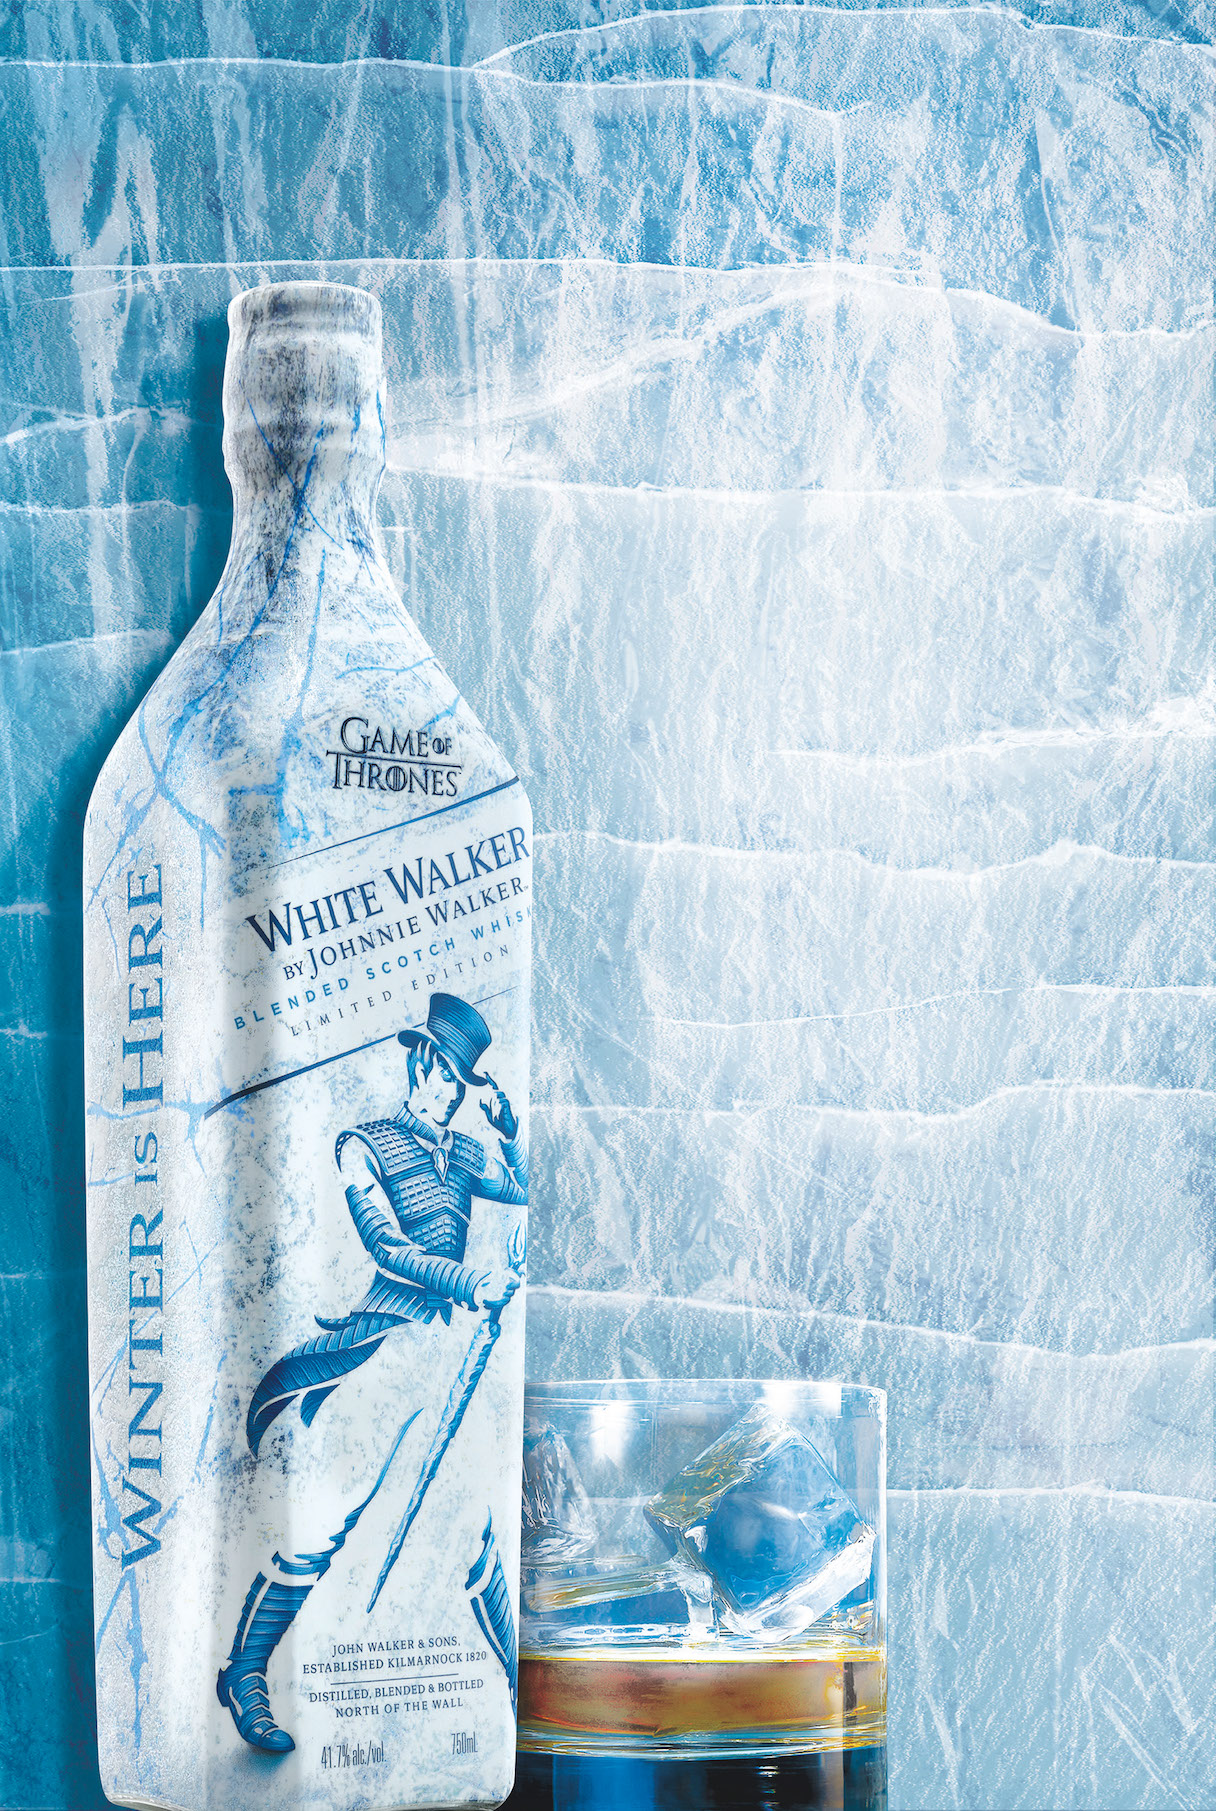 A cold, hard taste of Johnnie Walker's White Walker